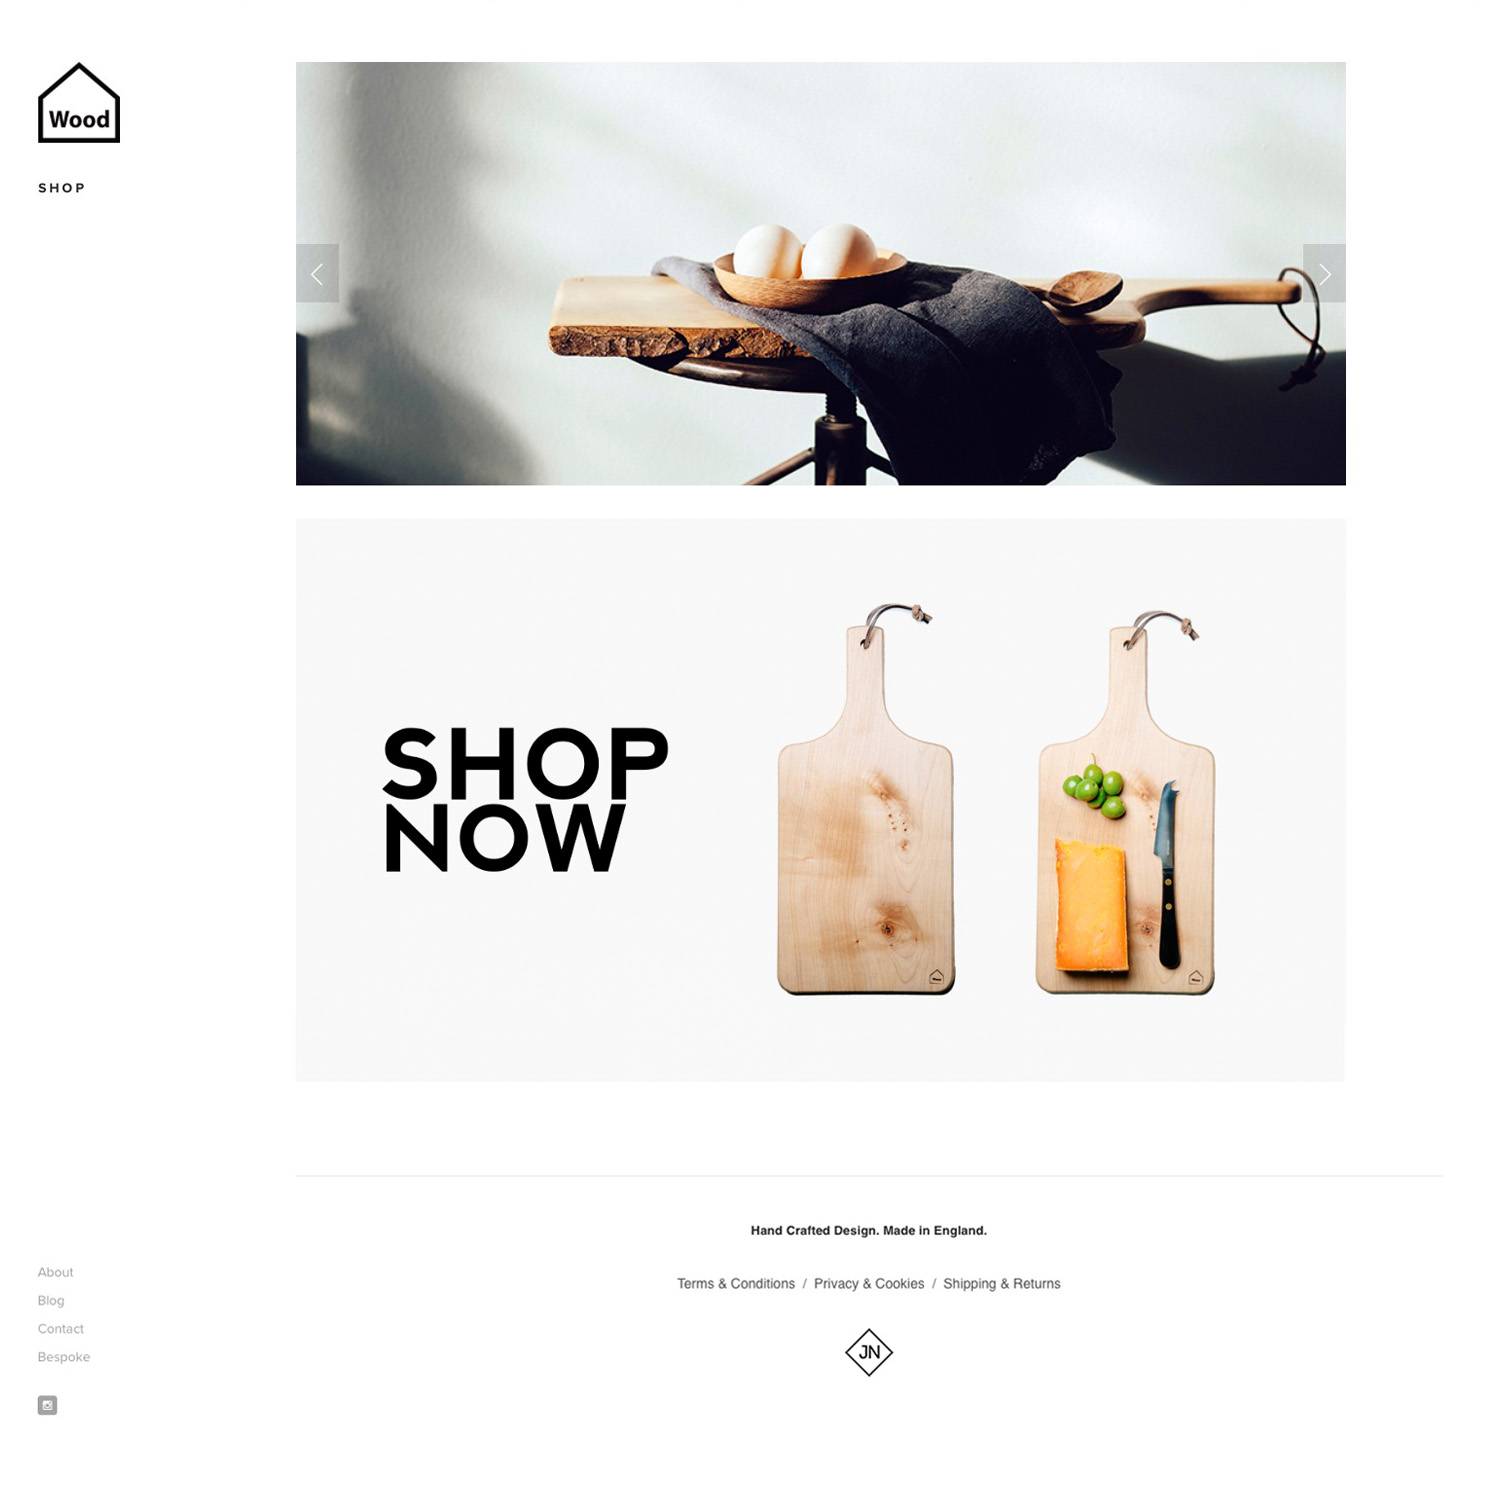 Website-Design-by-jn-wd03.jpg